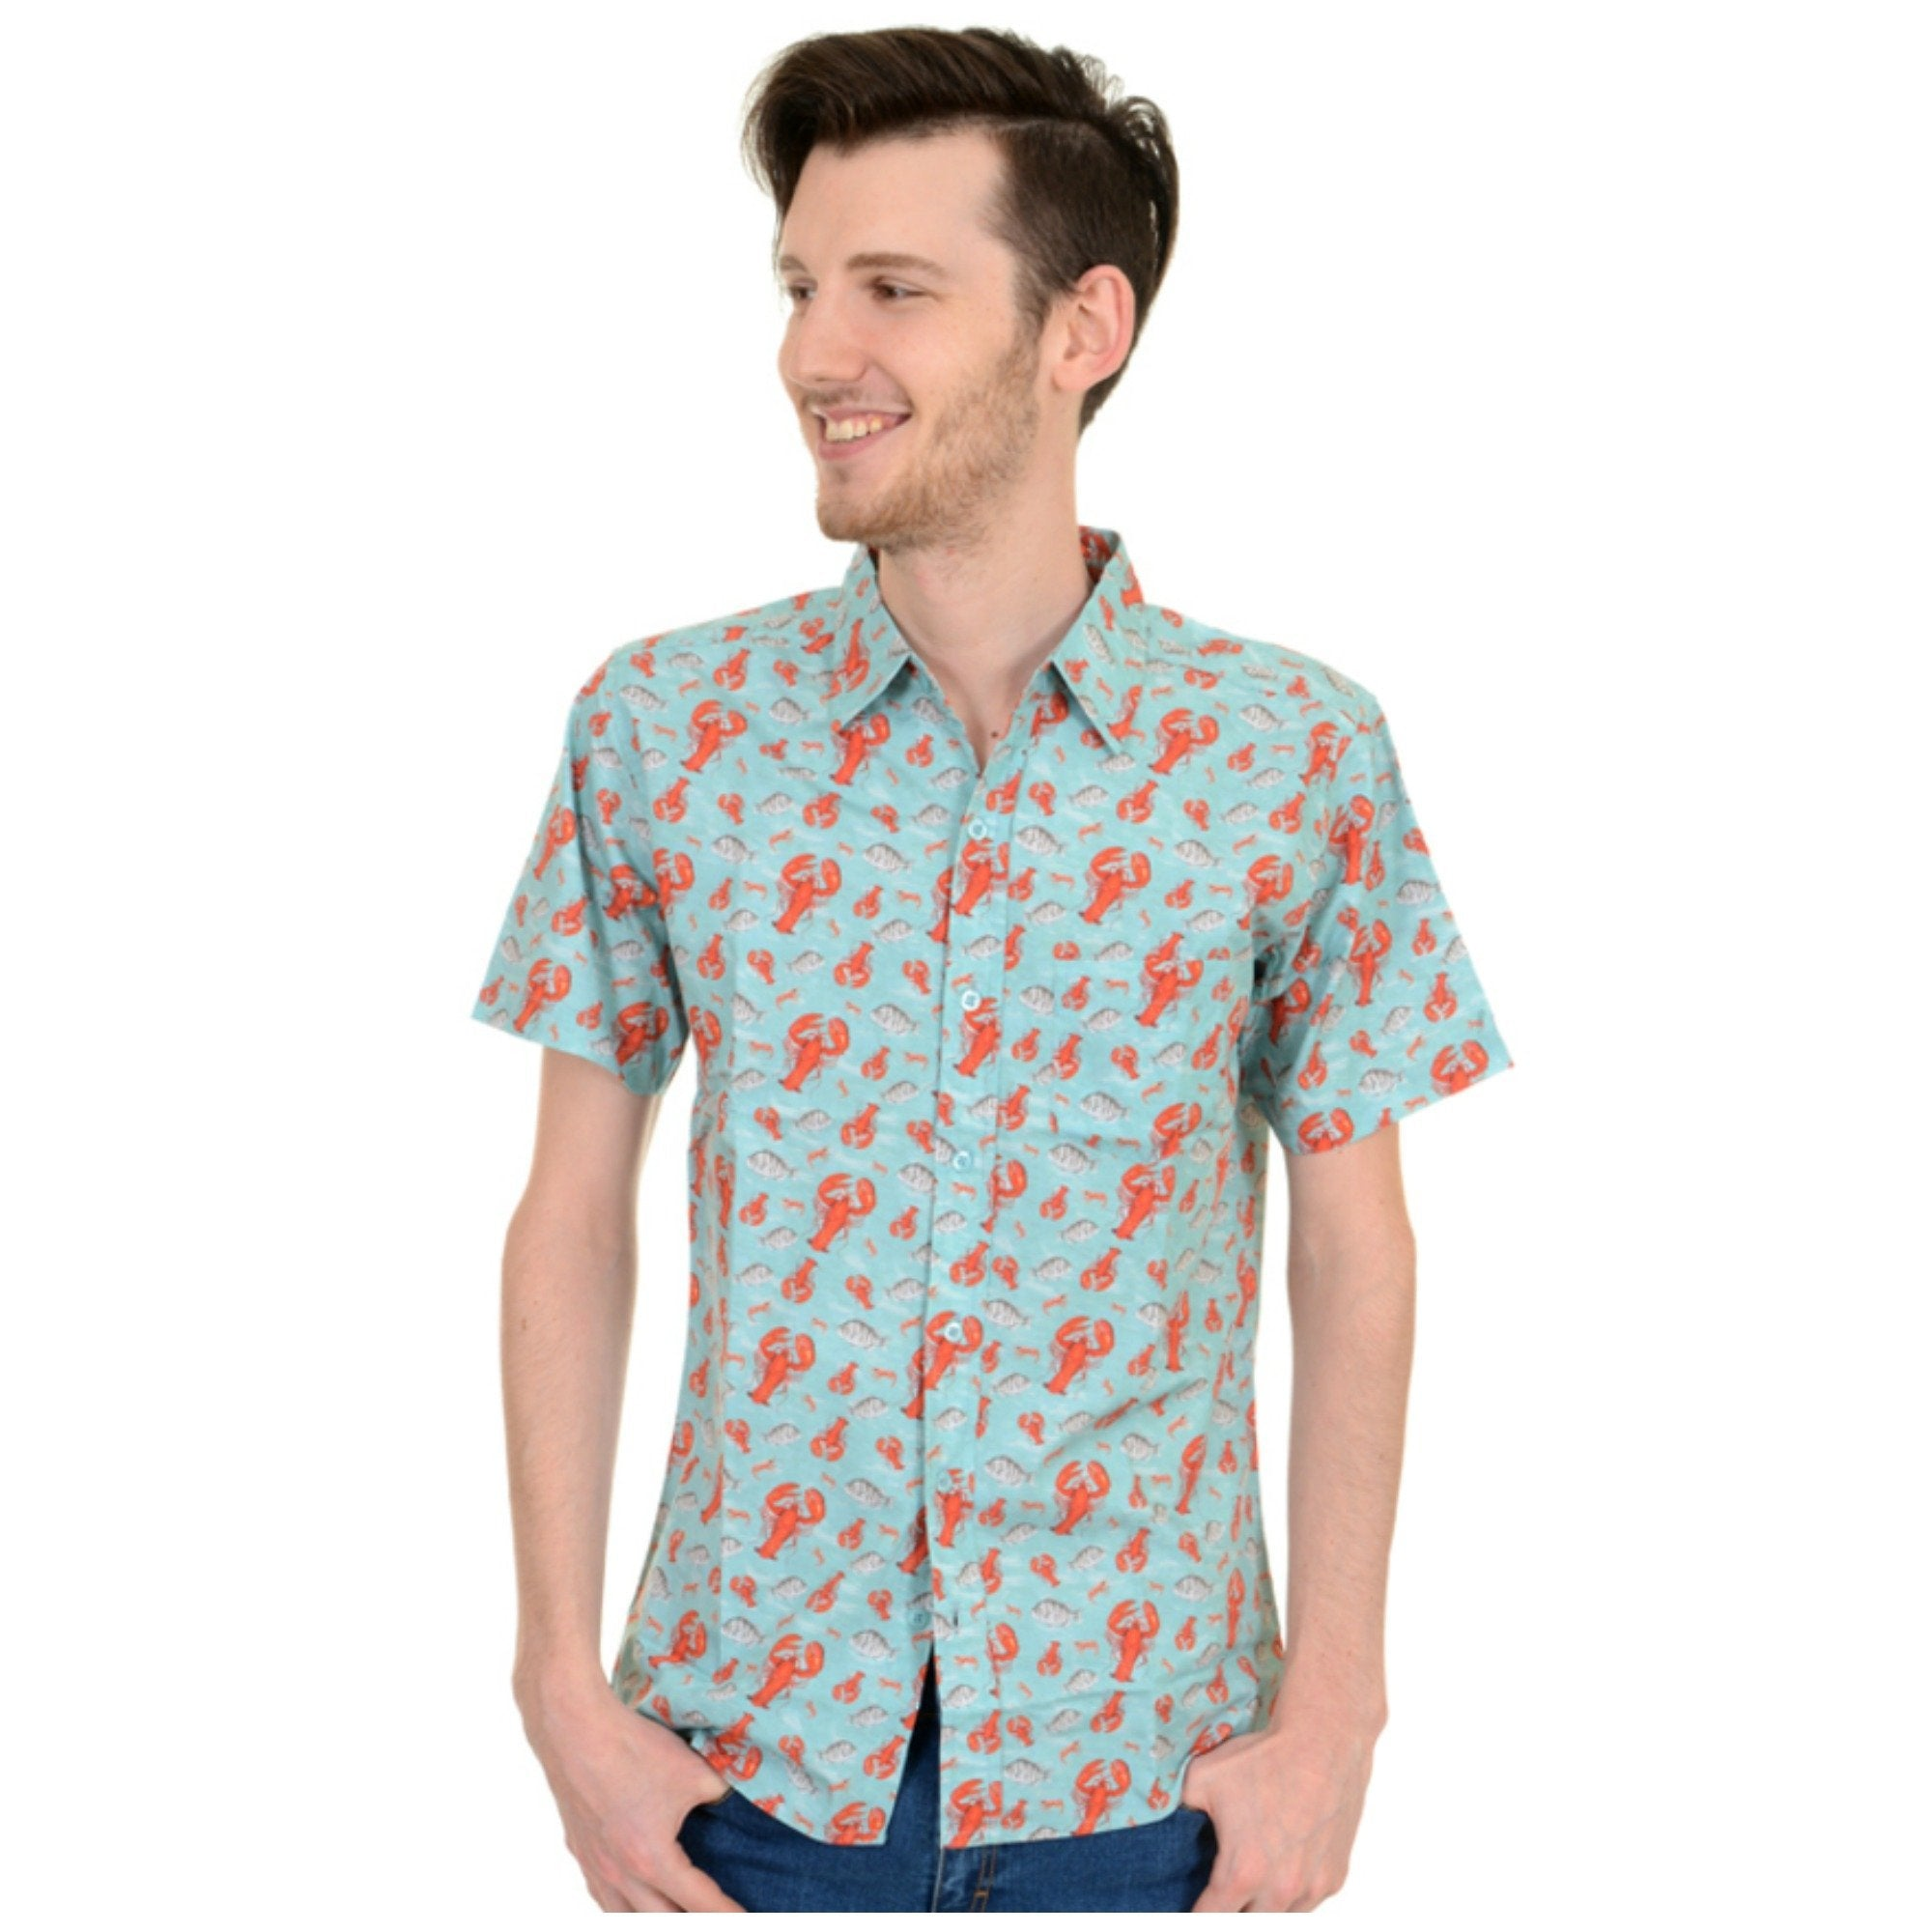 Lobster Print Shirt by Run and Fly - Minimum Mouse